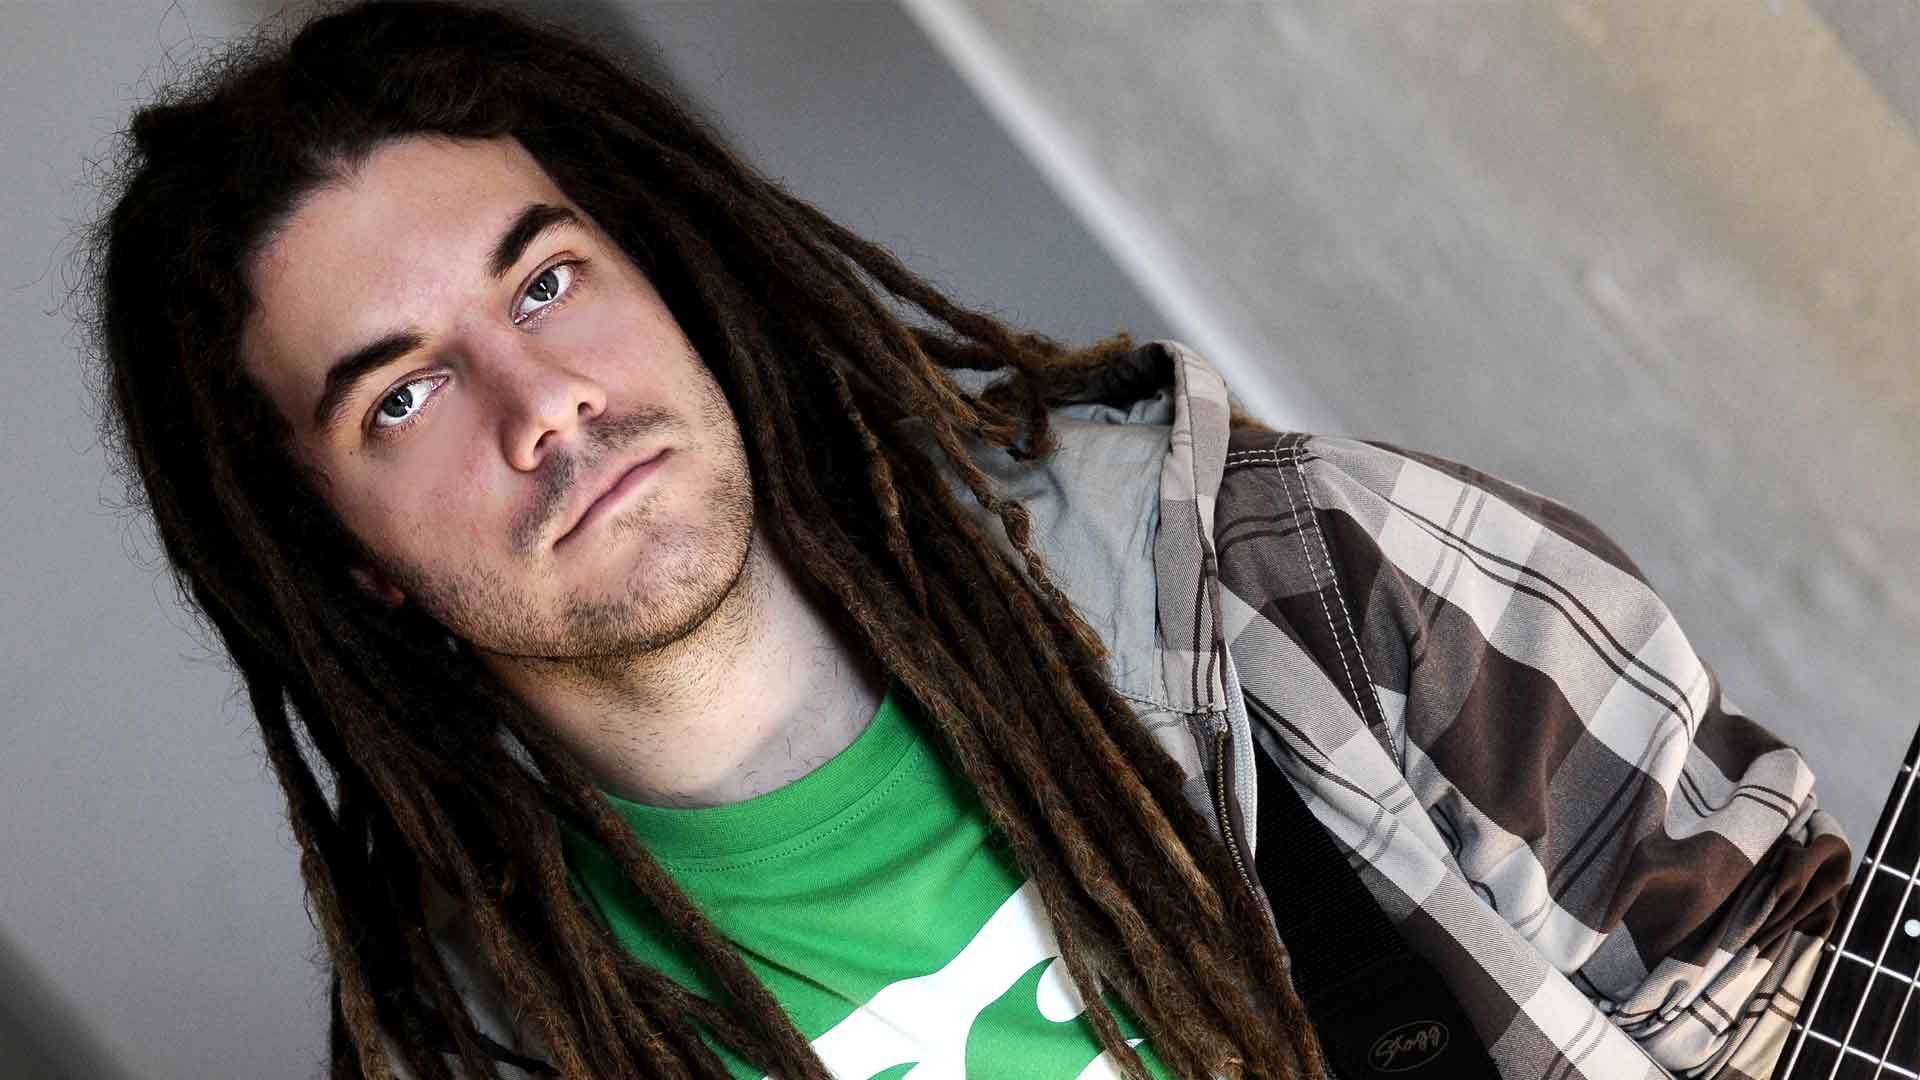 Dreads. Outdoorporträt fotografiert in Bonn